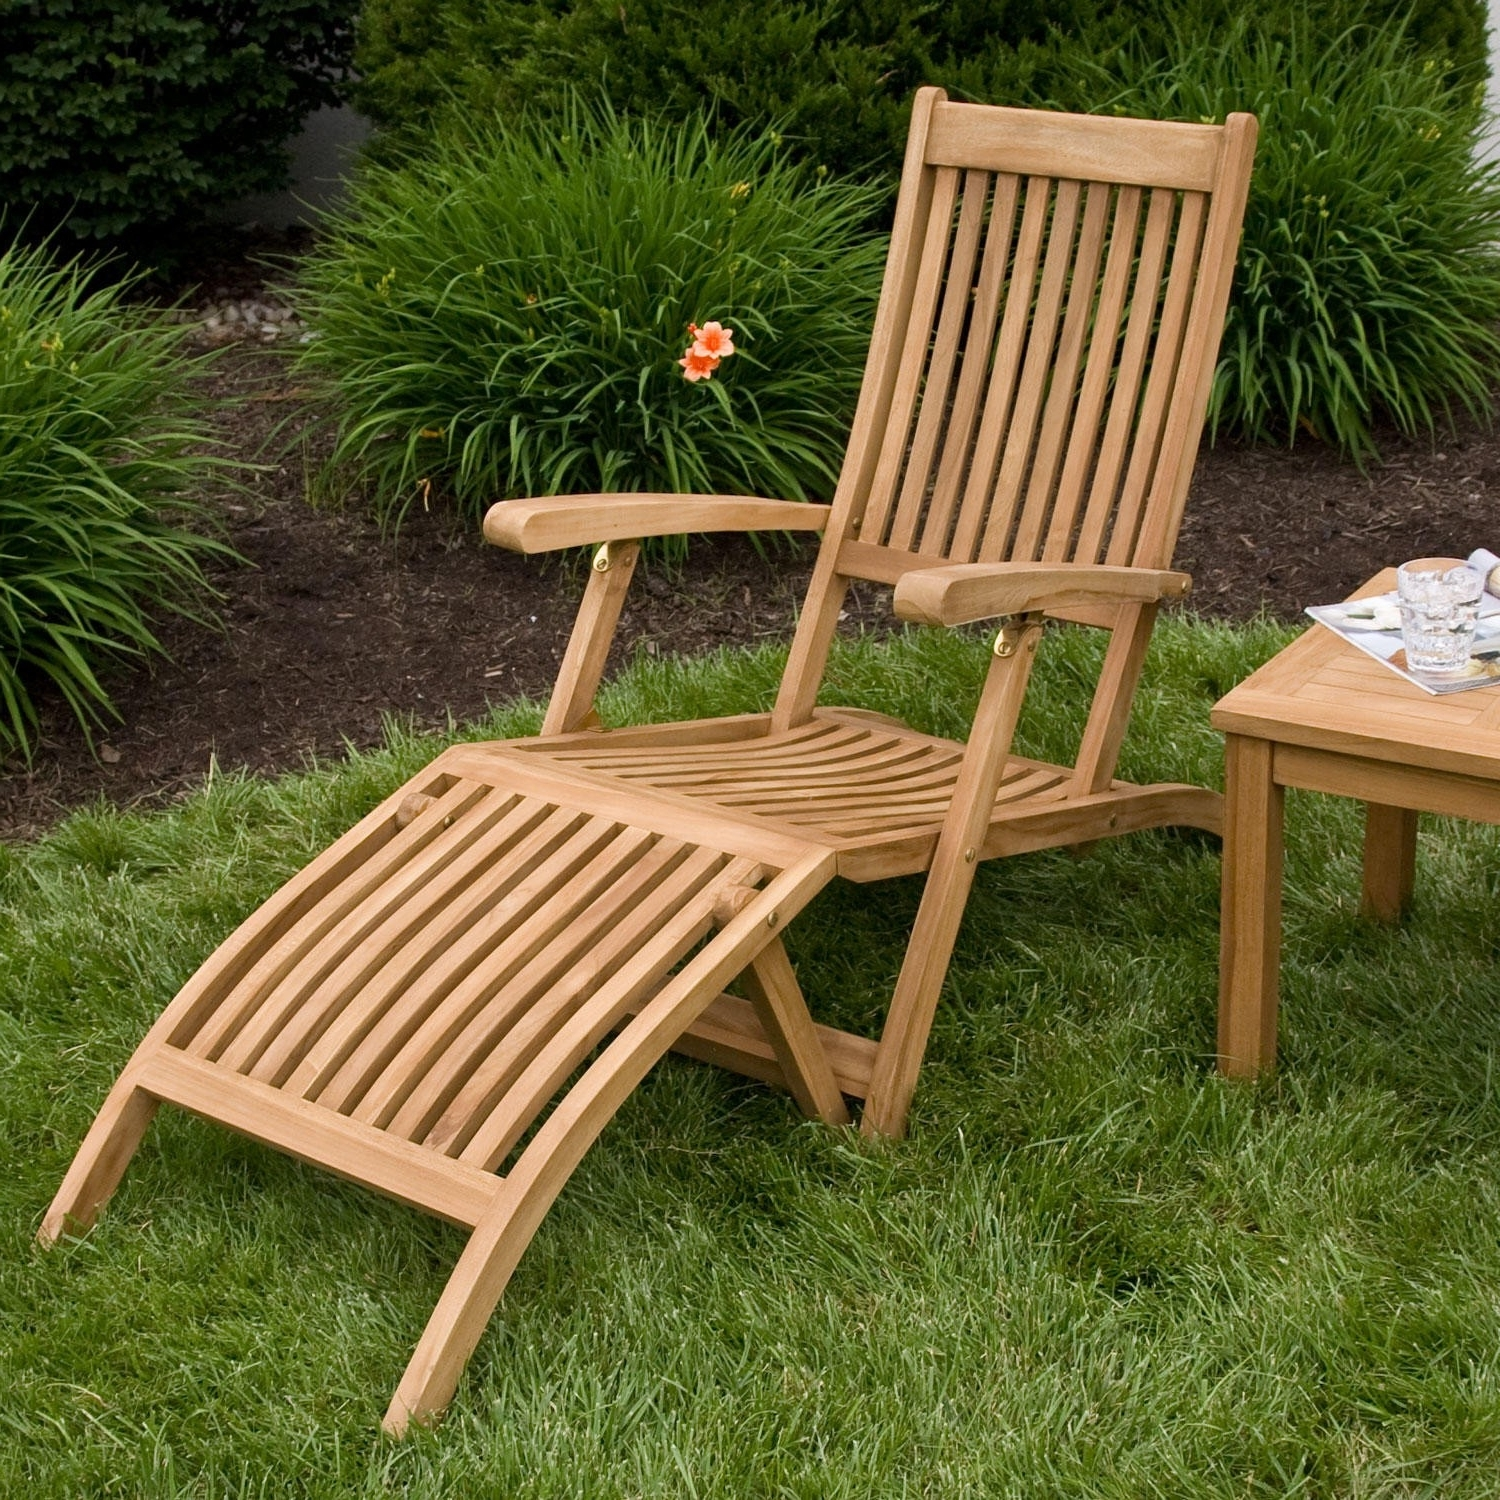 Teak Chaise Lounge Chairs Intended For Most Current Holley Teak Outdoor Folding Steamer Lounge Chair – Outdoor (View 11 of 15)